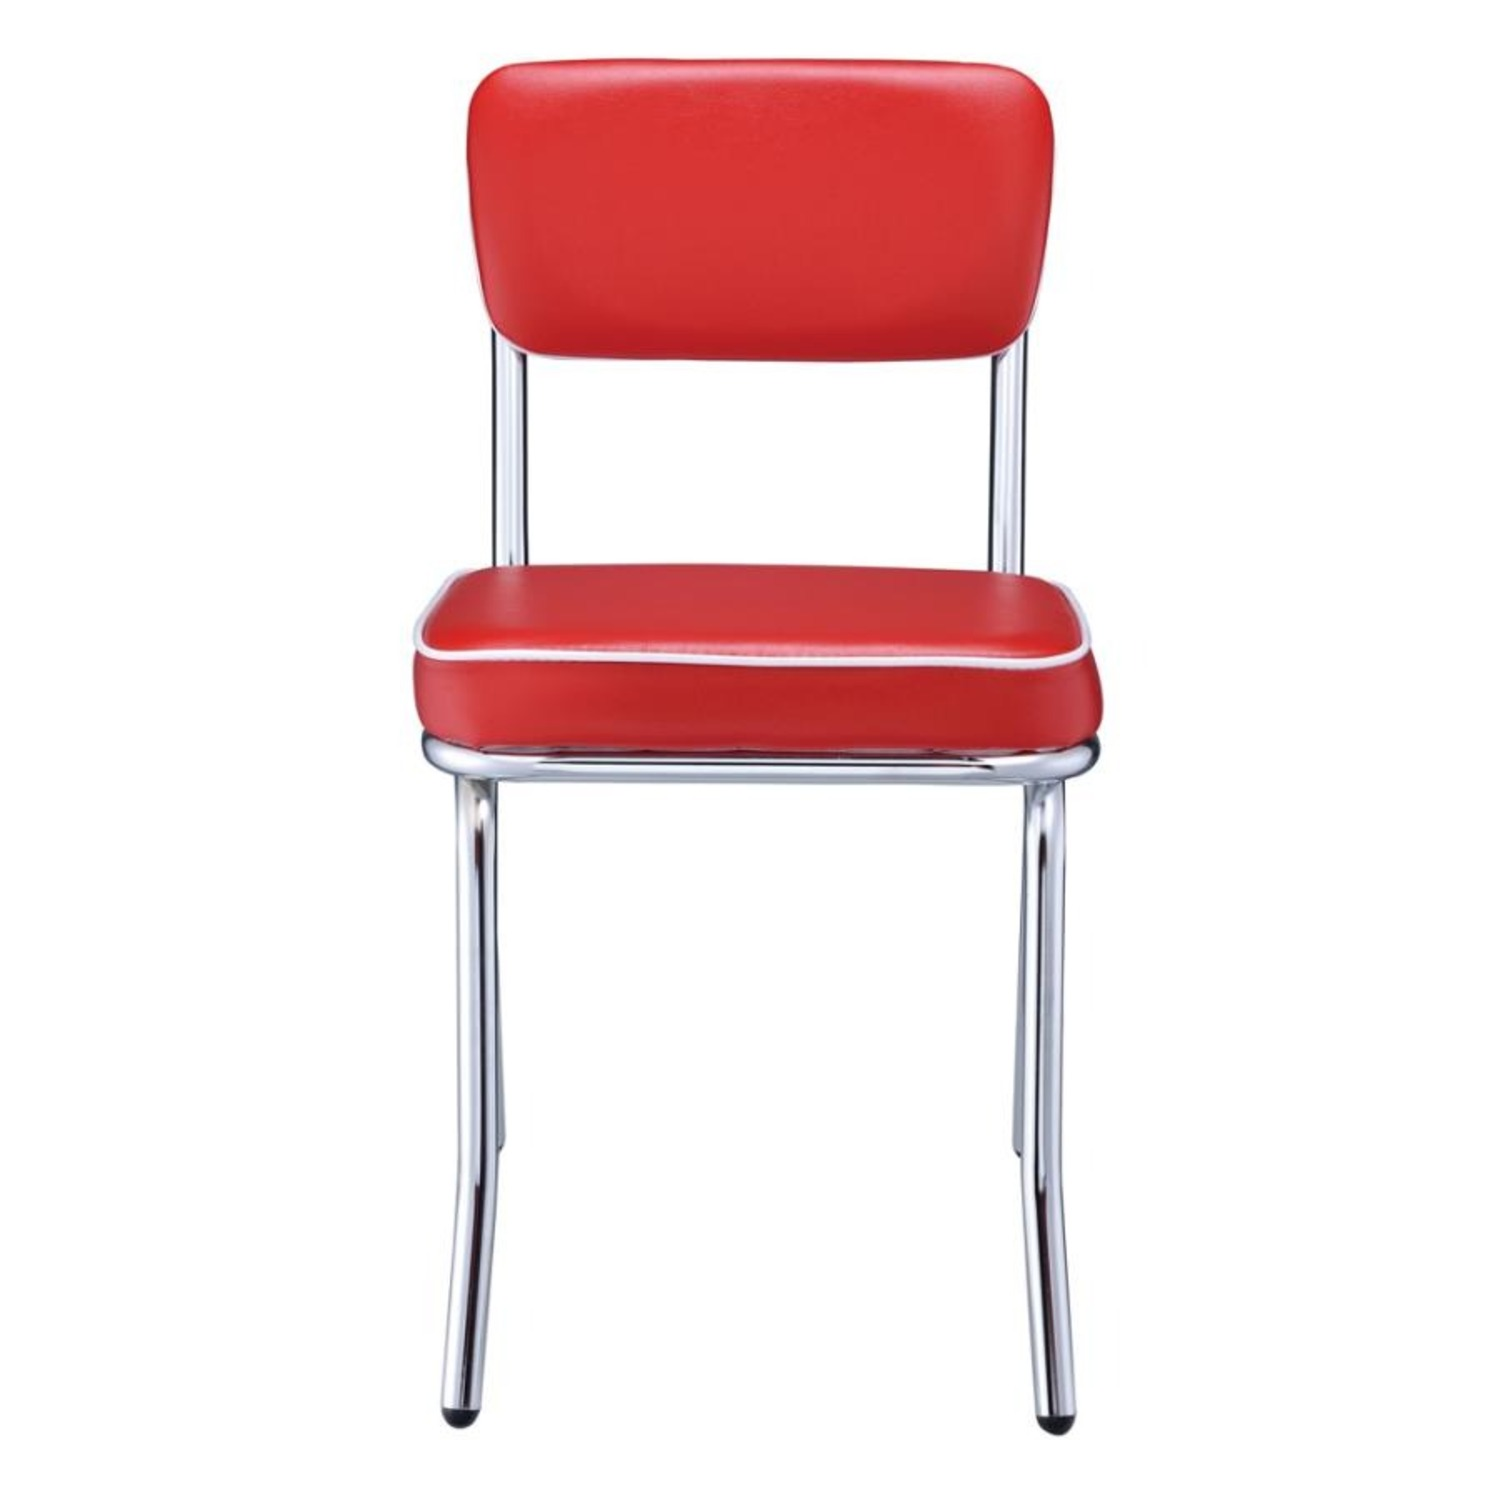 Mid-Century Style Dining Chair In Red Leatherette - image-1